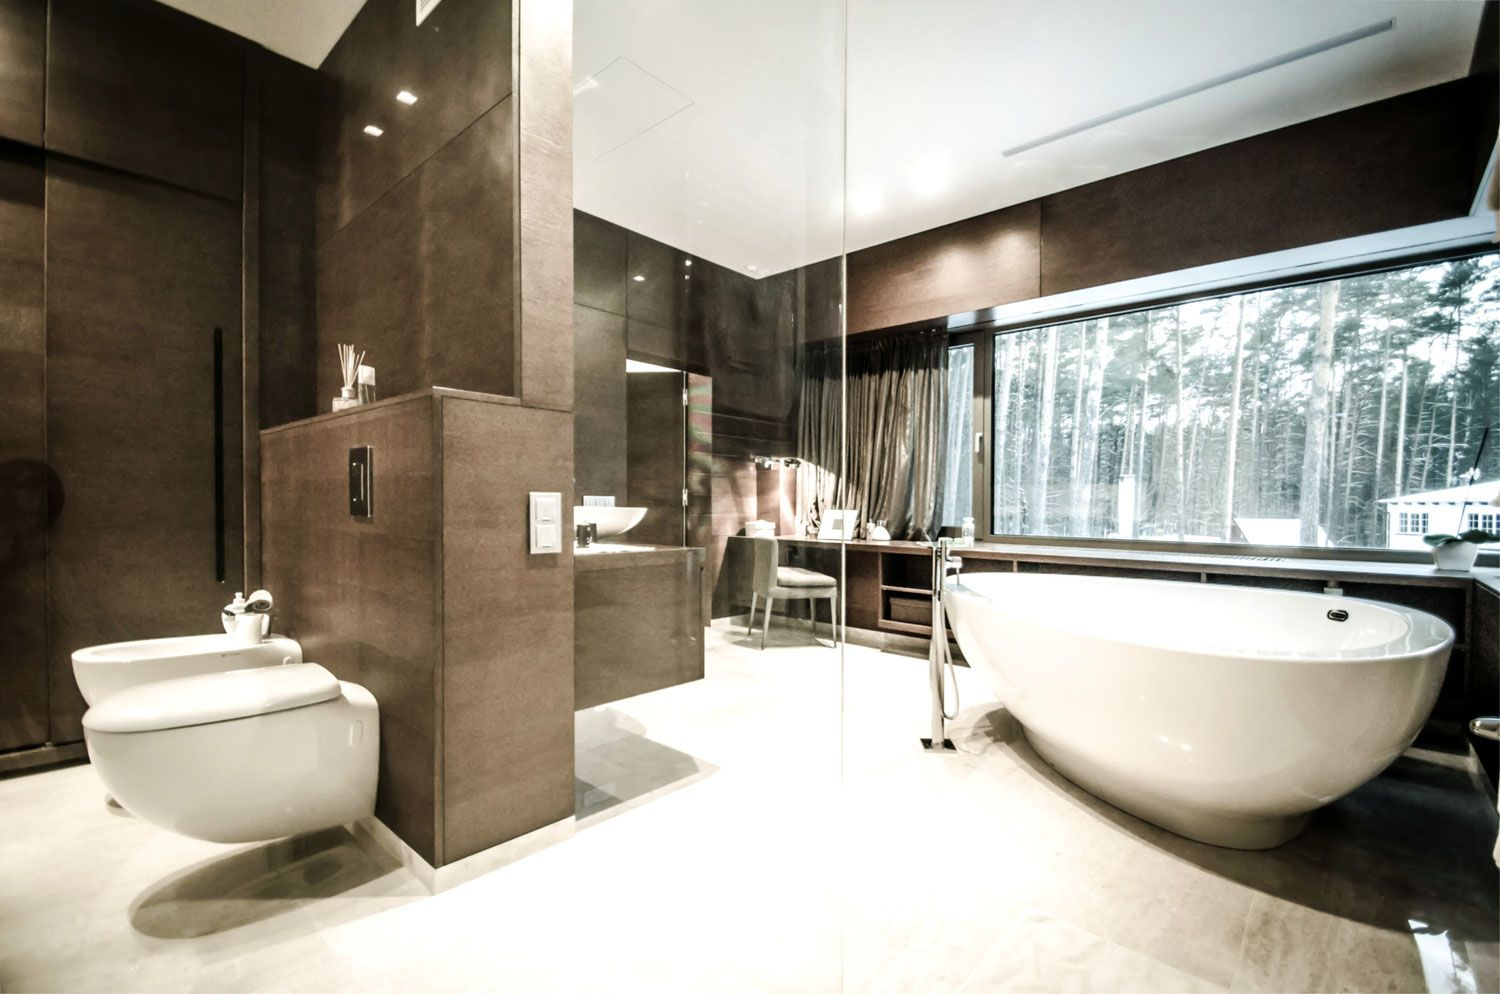 Rectangle Parallelepiped House By Devyni Architektai 14 Bedroom With Bath Bathroom Renovations Dream Bathrooms